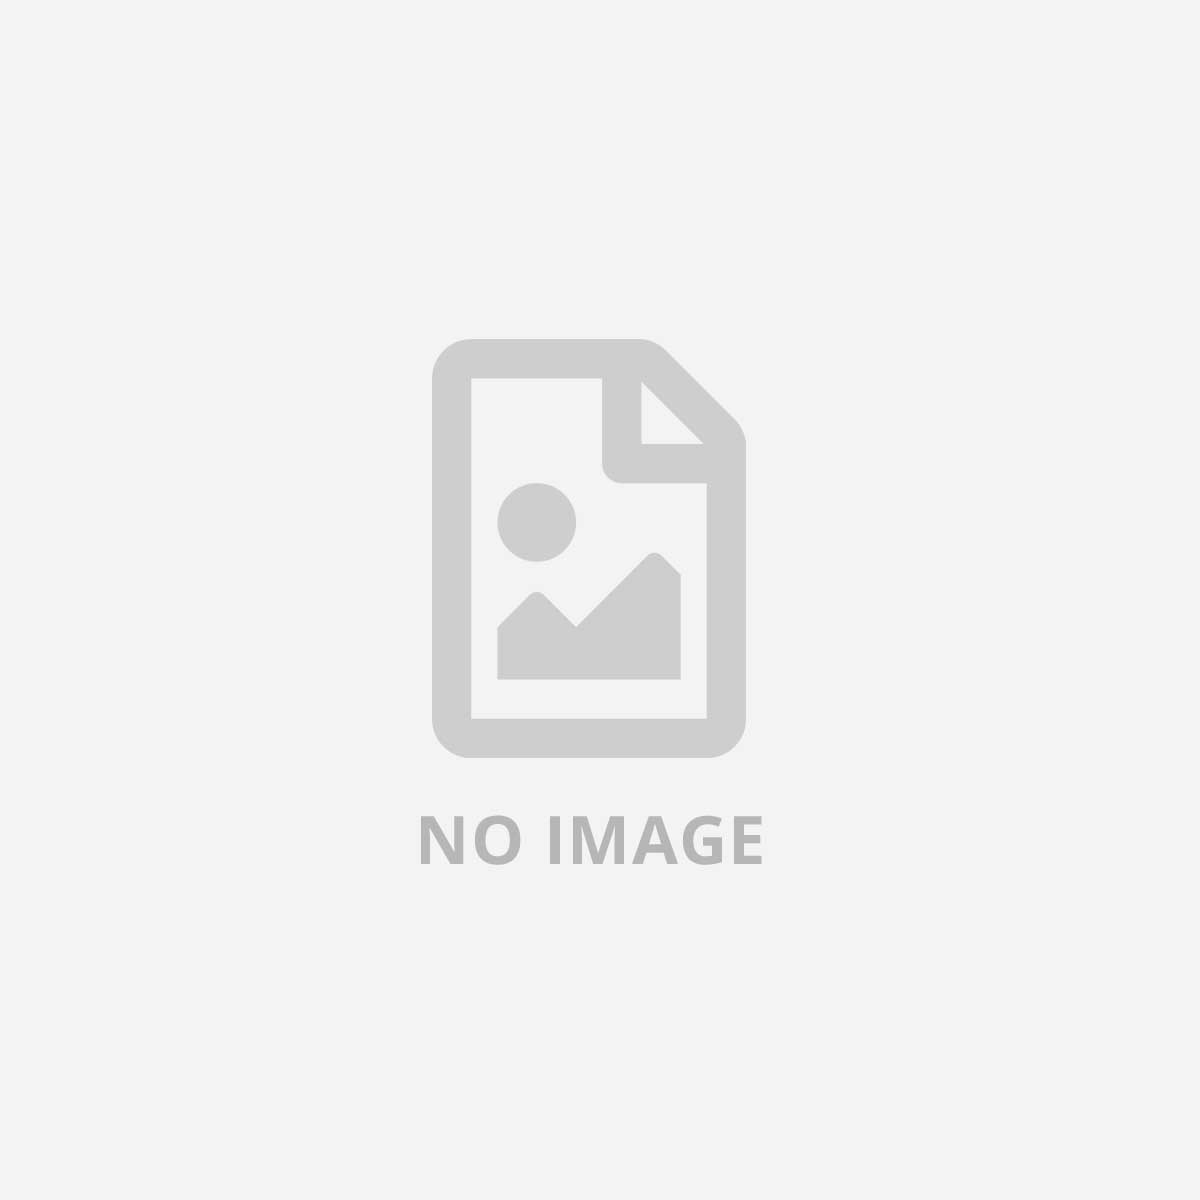 NILOX CASSE AMPLIFICATE SP 340 WHITE